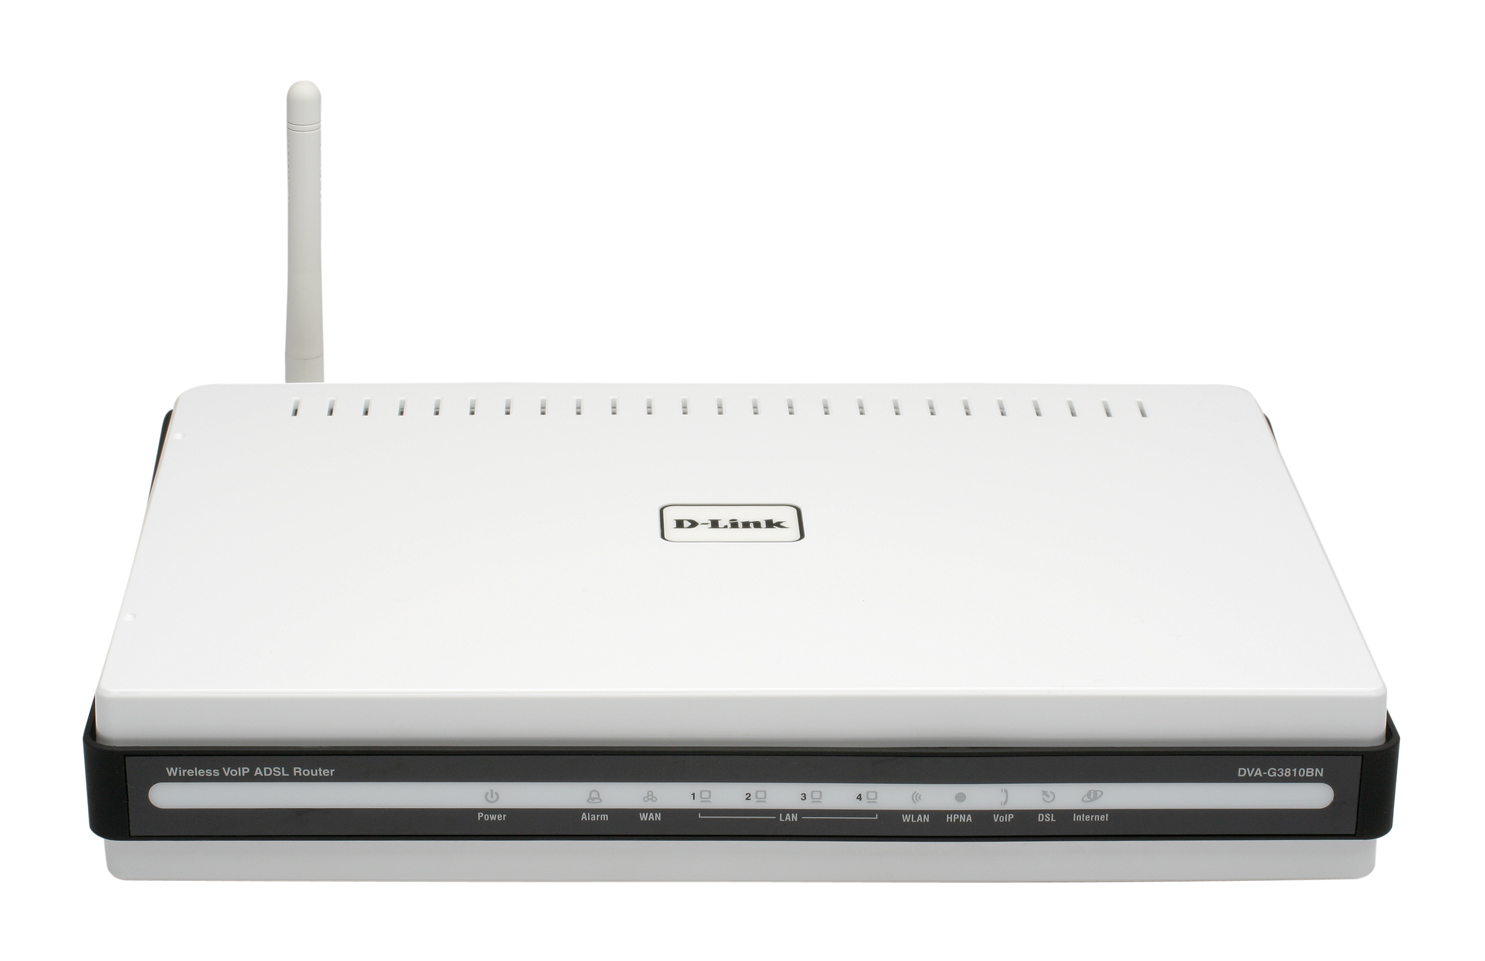 Wireless 802.11g Triple-Play Home Gateway / D-Link Corporation